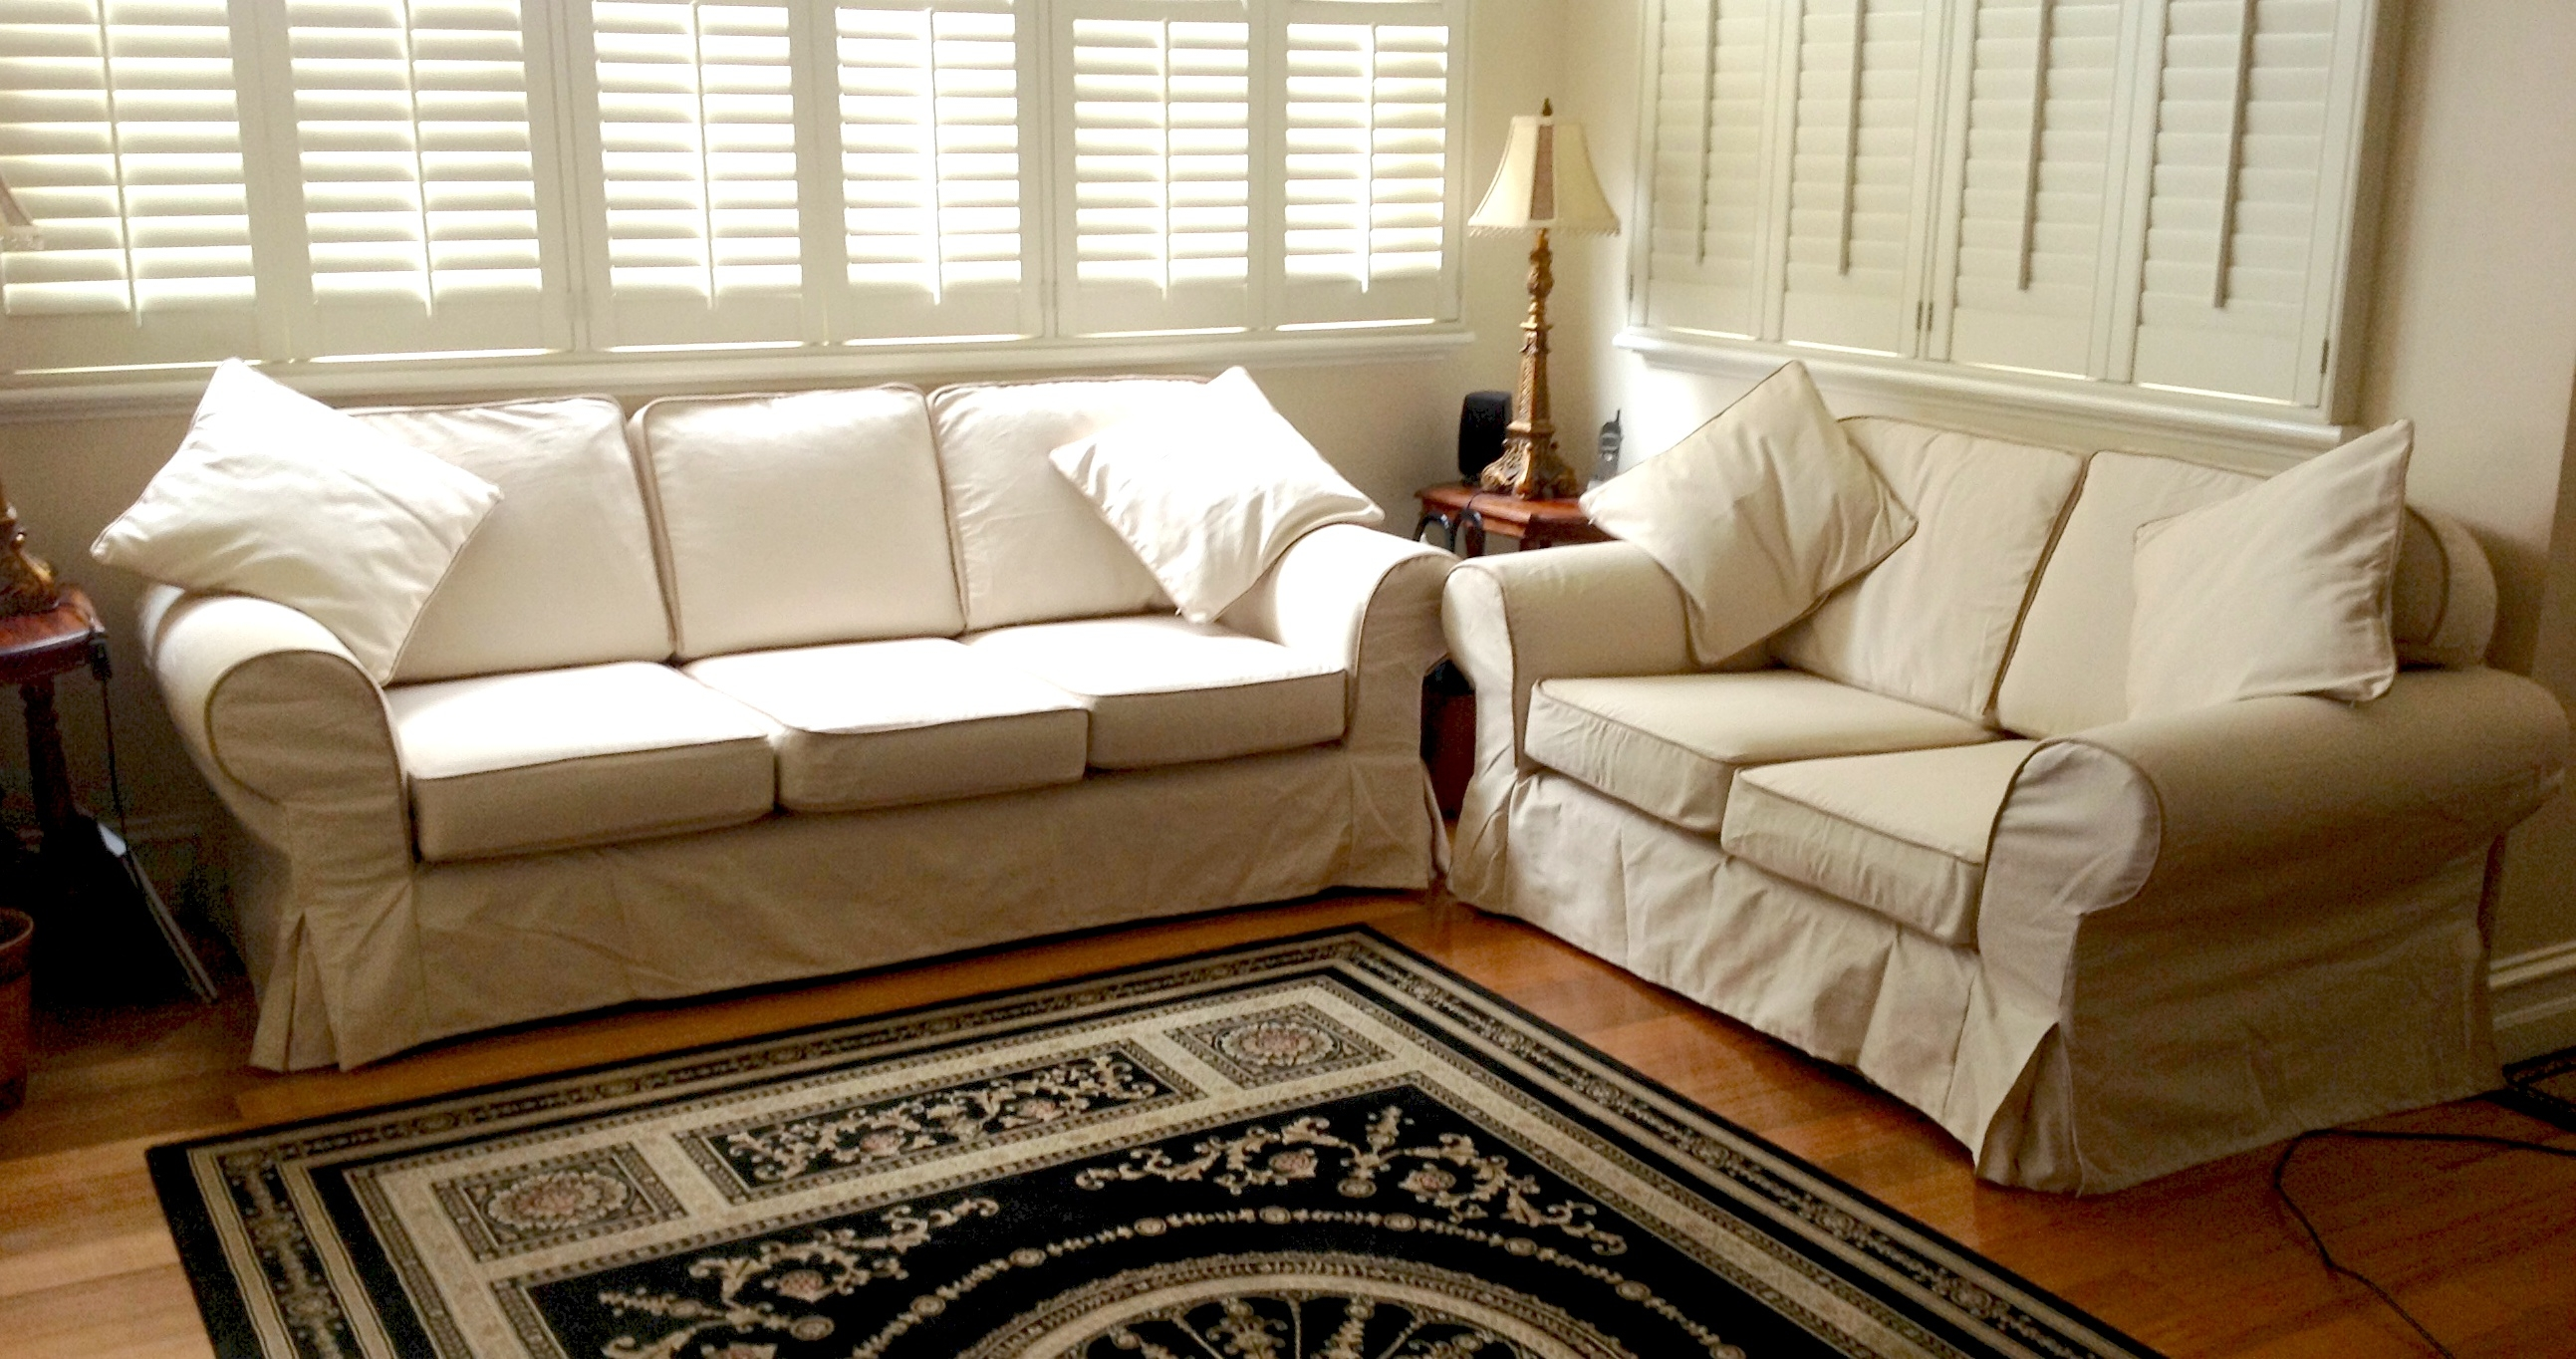 Custom Slipcovers And Couch Cover For Any Sofa Online Throughout  Contemporary Sofa Slipcovers (#3